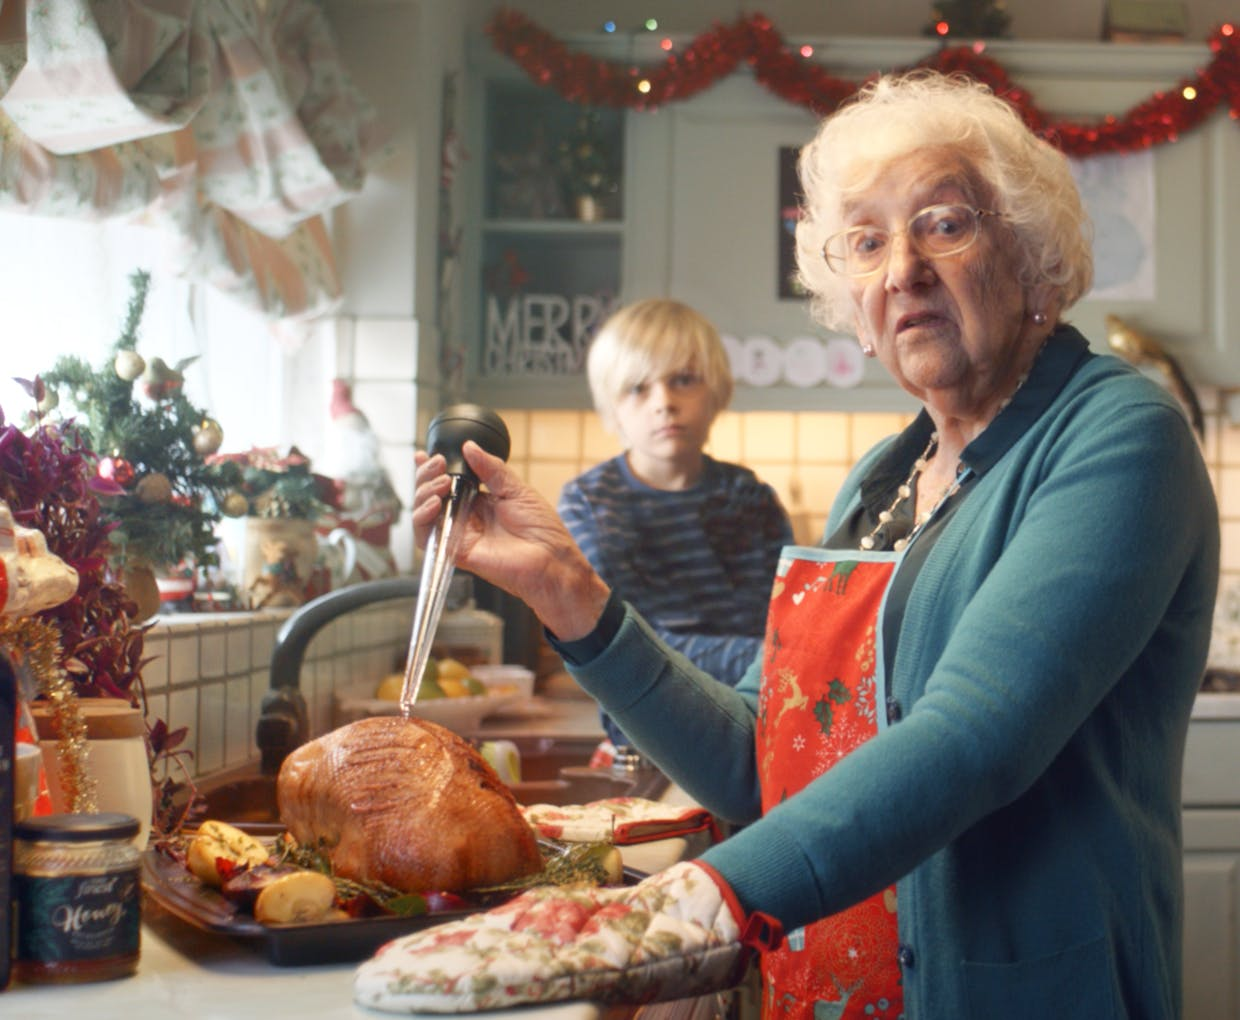 Tesco Christmas Advert 2019 Tesco credits strong brand engagement as Christmas ad helps boost